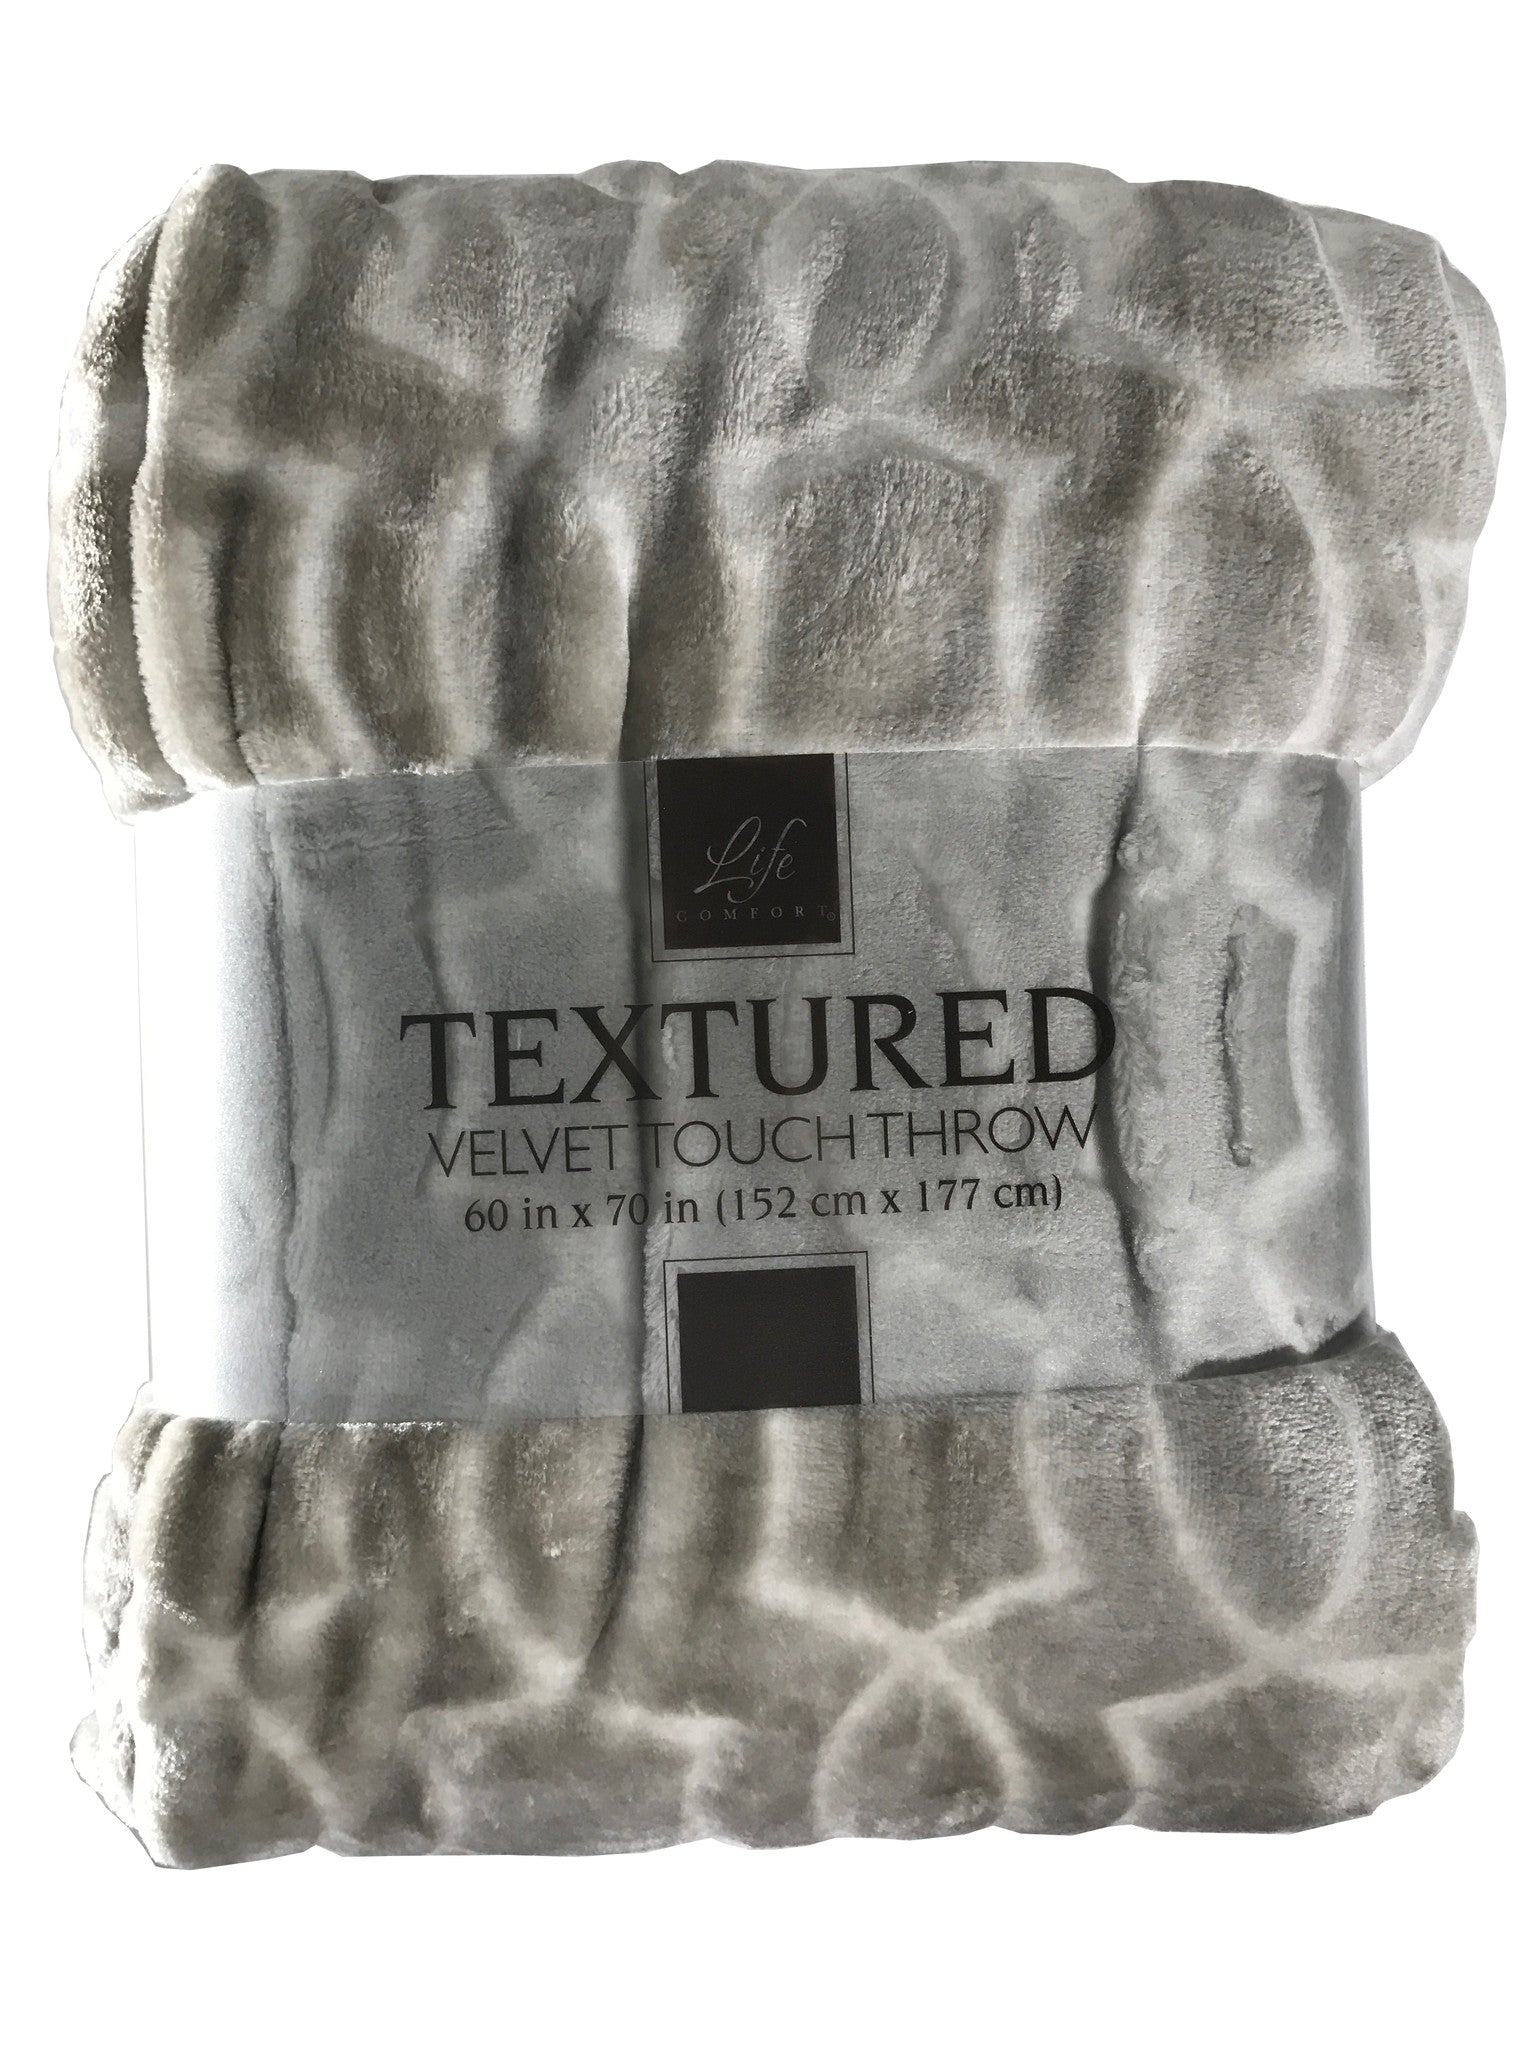 Life Comfort Textured Velvet Touch Throw (60 in x 70 in)  [Light Brown]